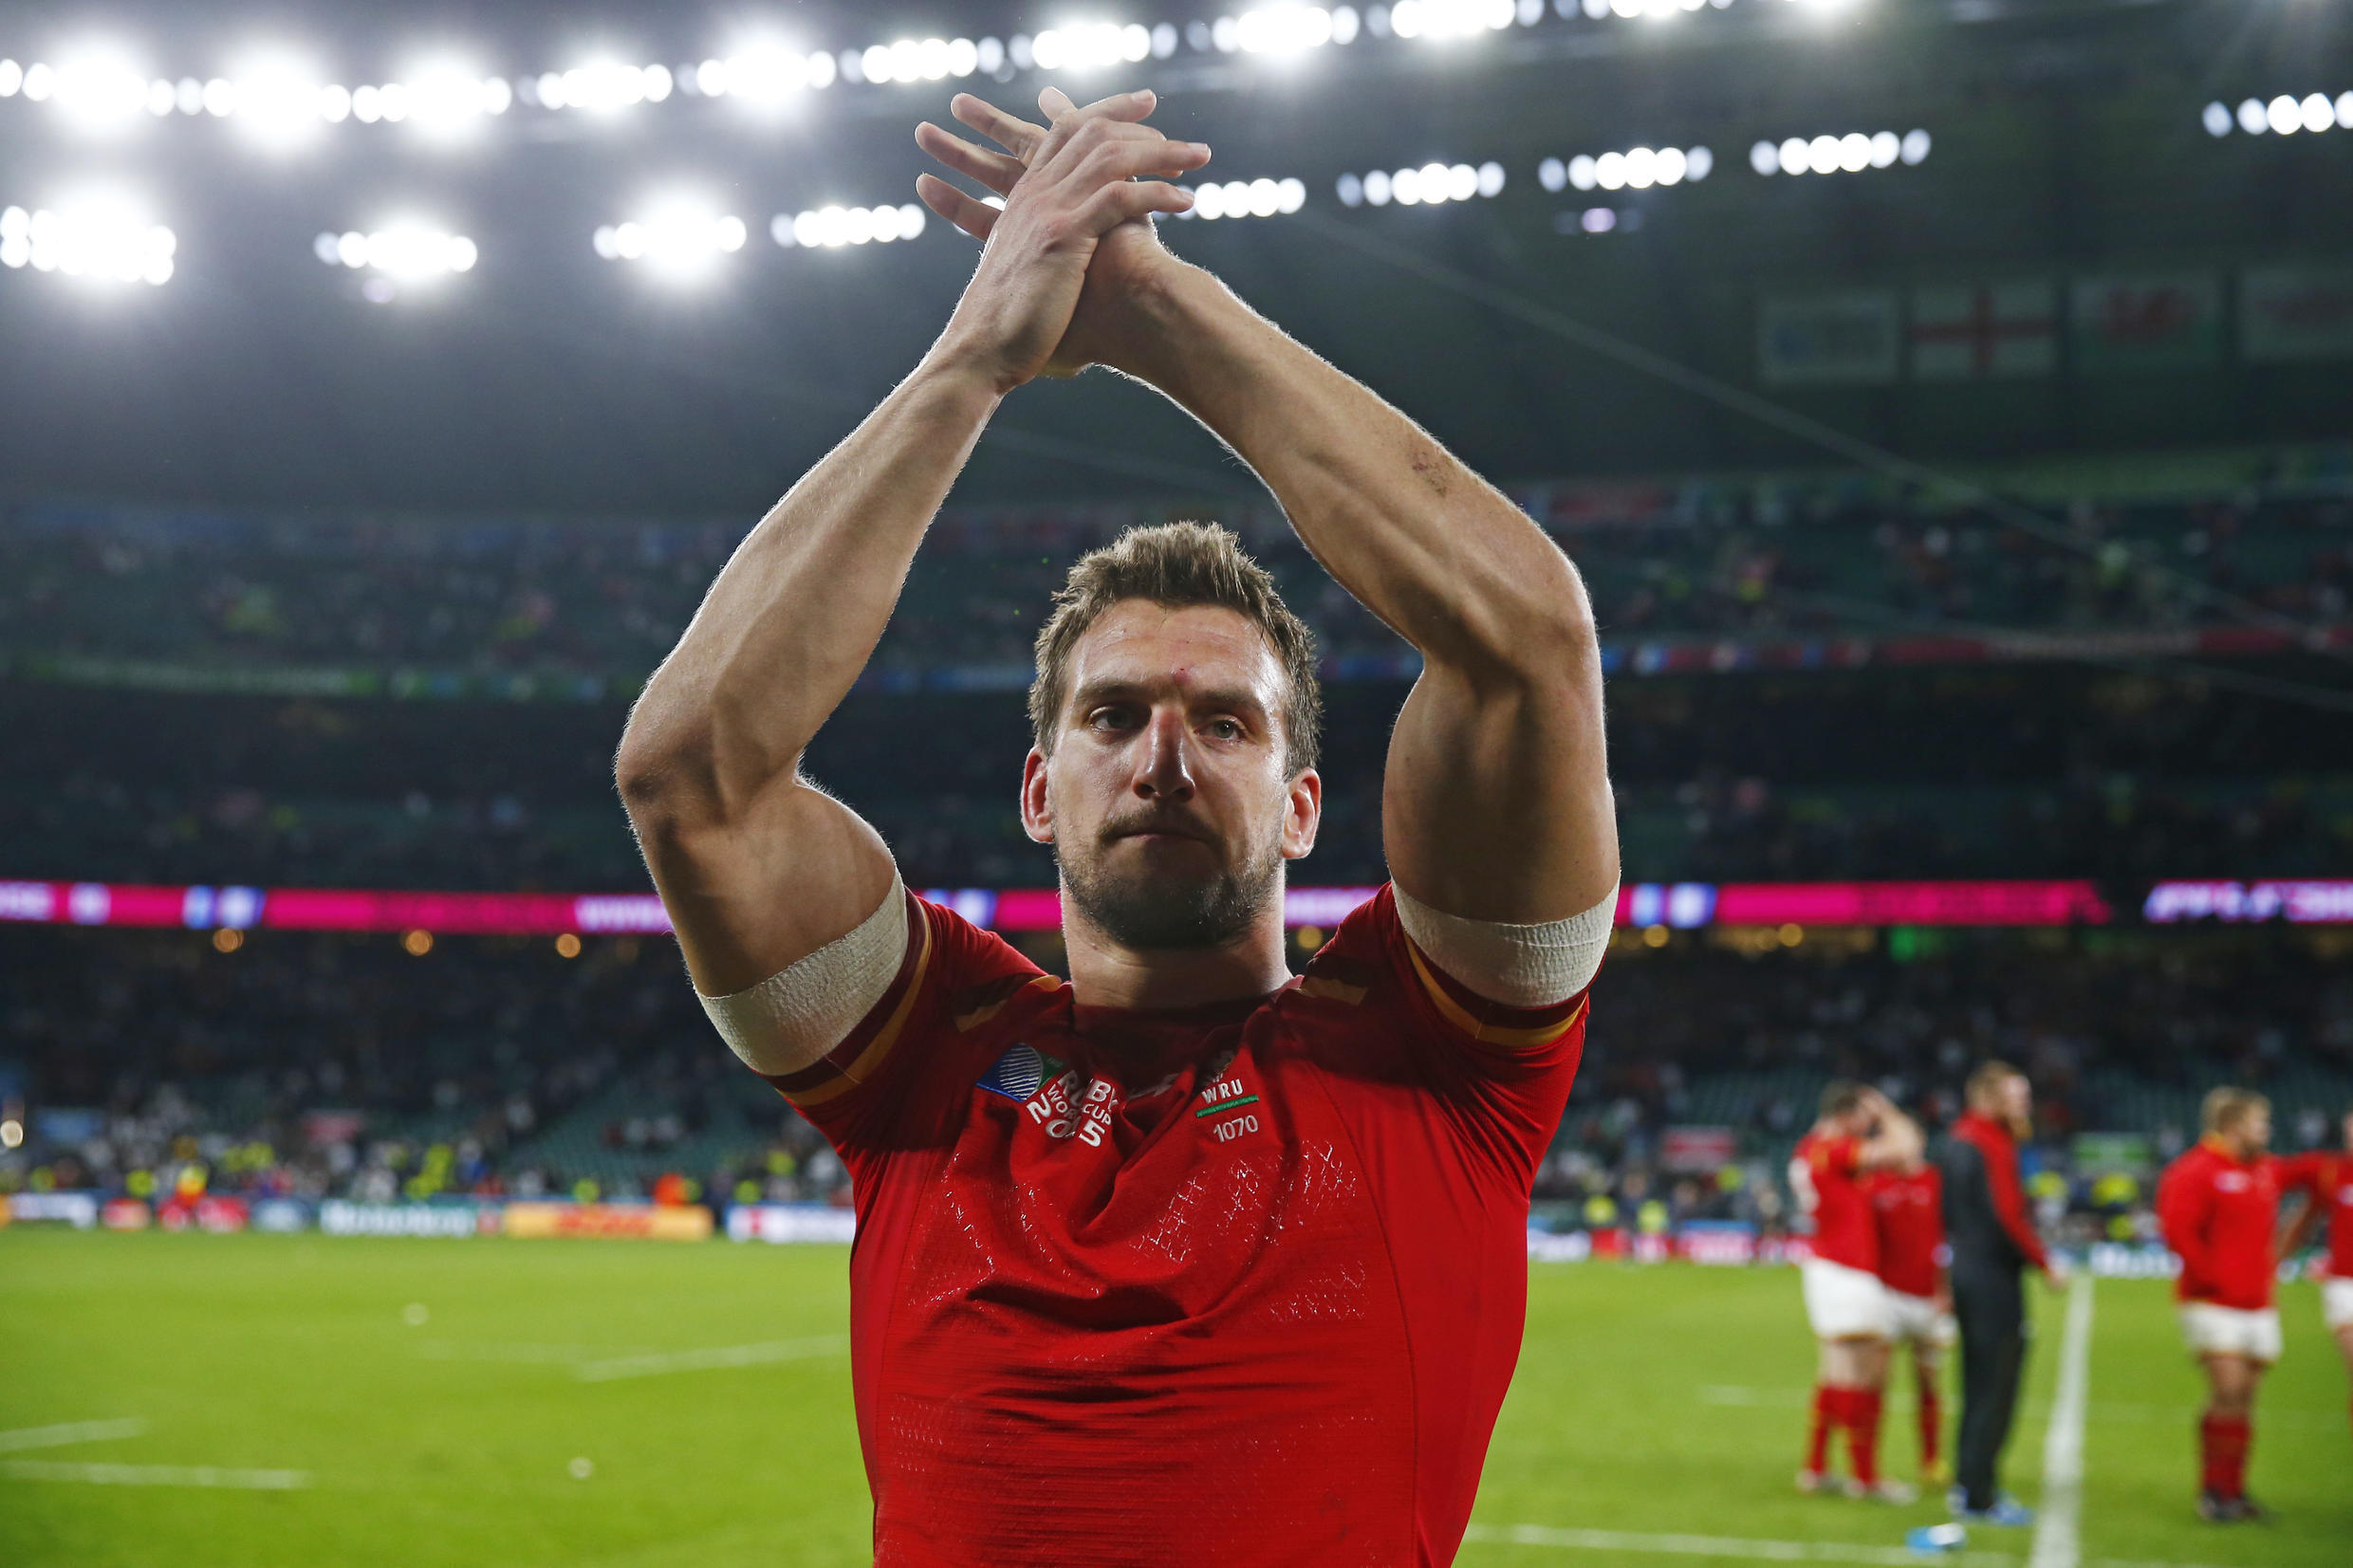 Wales skipper Sam Warburton has led his men to three victories at the rugby World Cup.